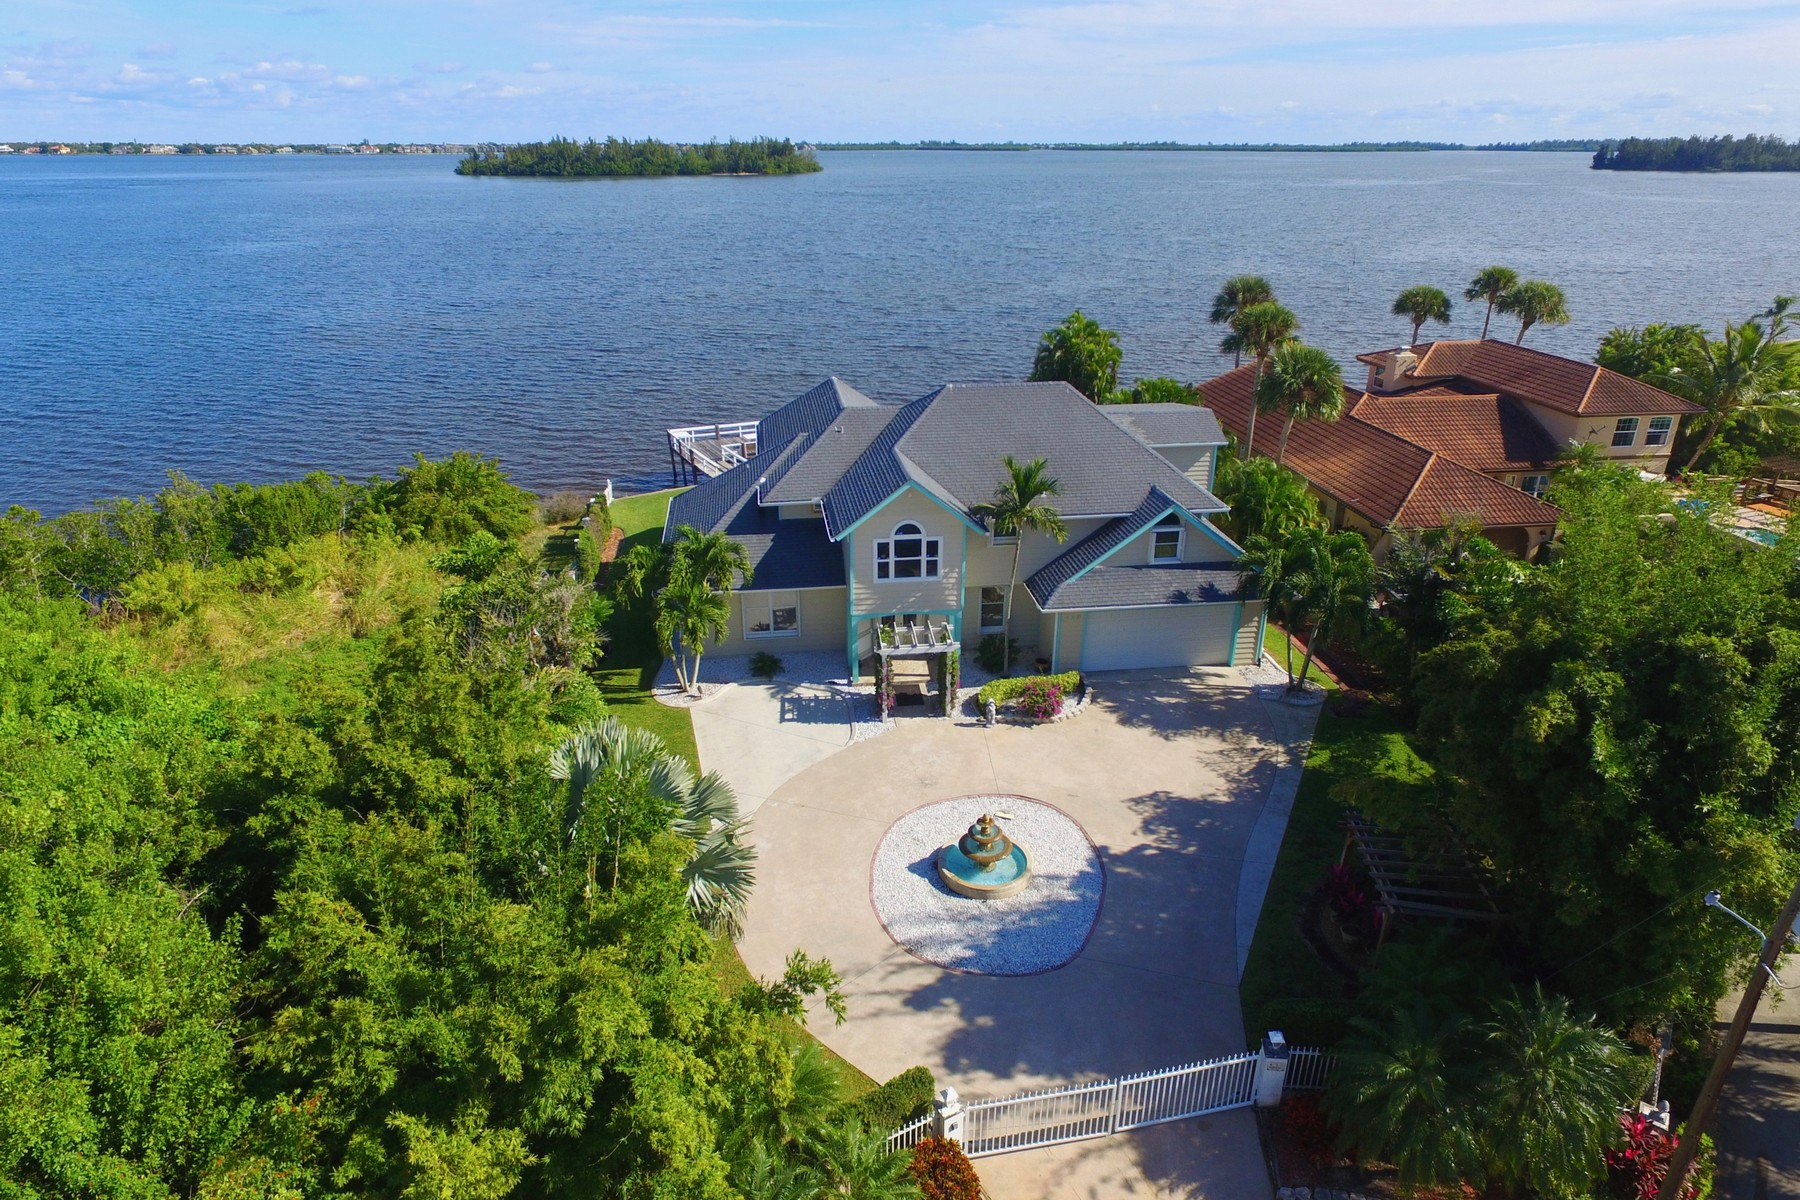 Property for Sale at Sunrise Point! Direct Riverfront Pool Home With Dock 499 12th Street SE Vero Beach, Florida 32962 United States